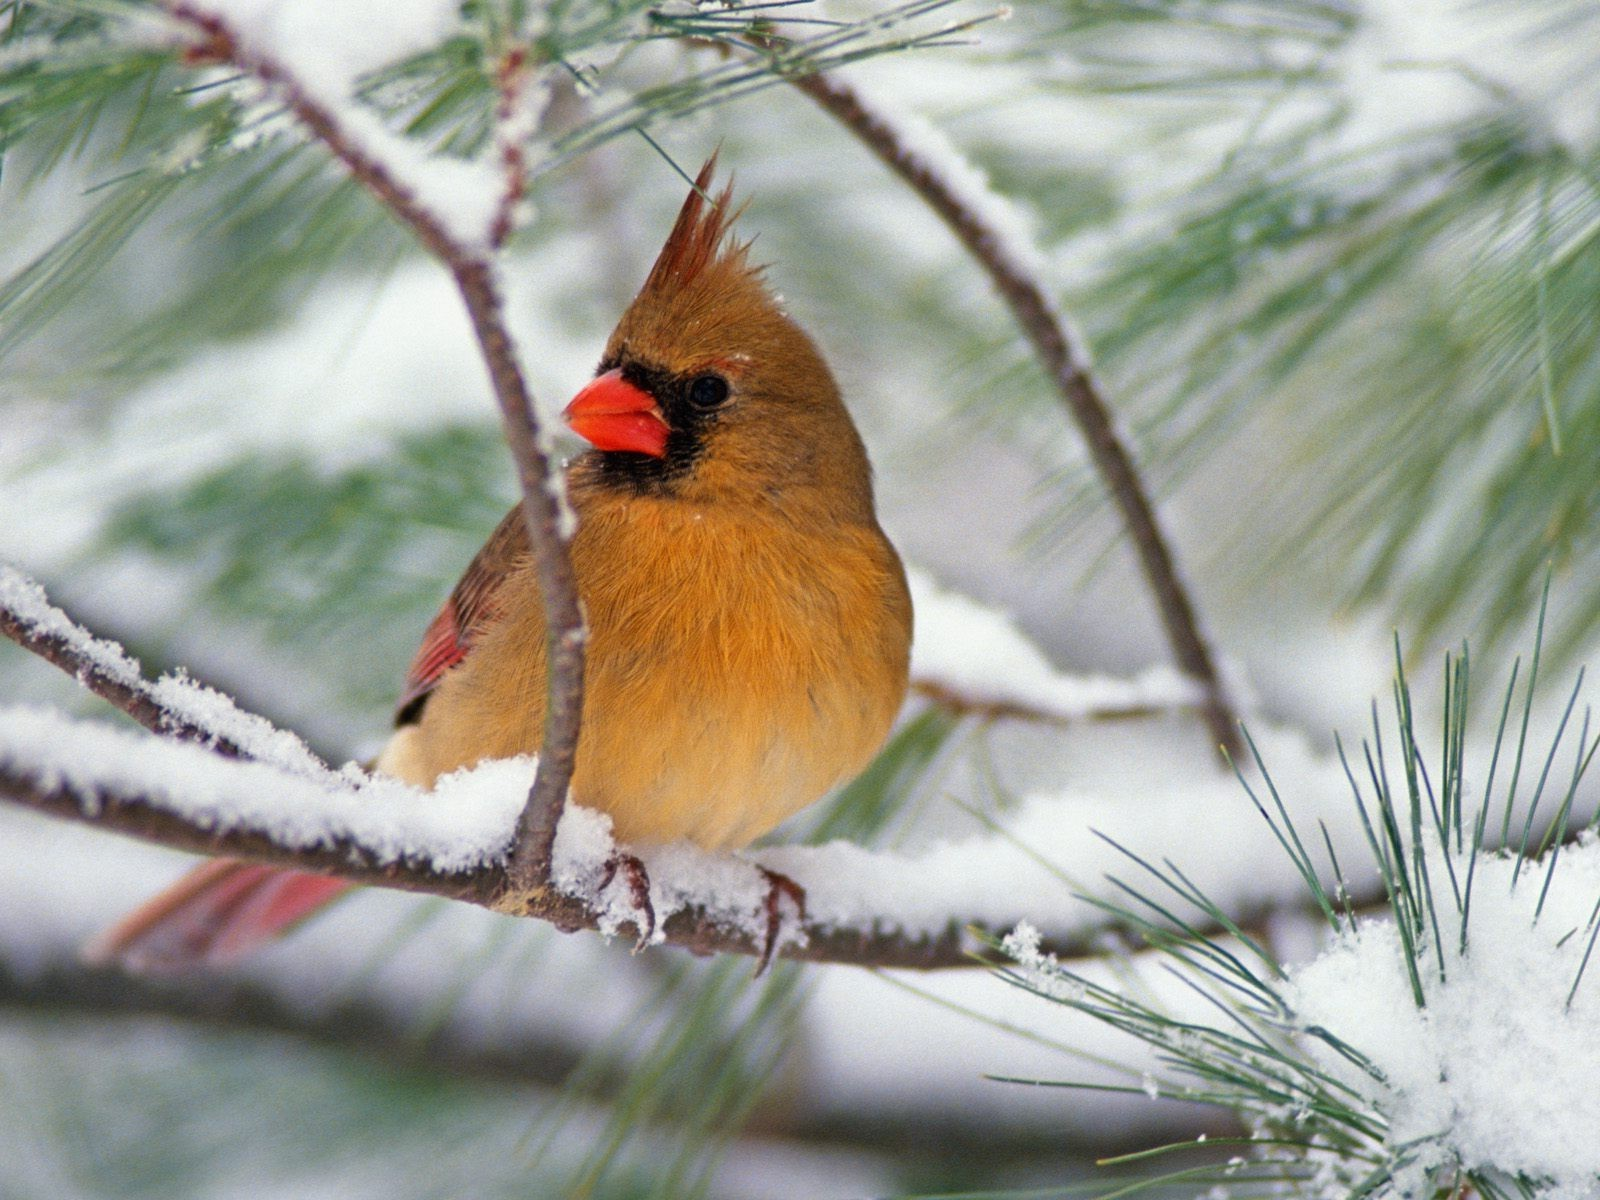 Cardinal on snowy pine branch fond d 39 cran and arri re for Fond ecran hiver animaux